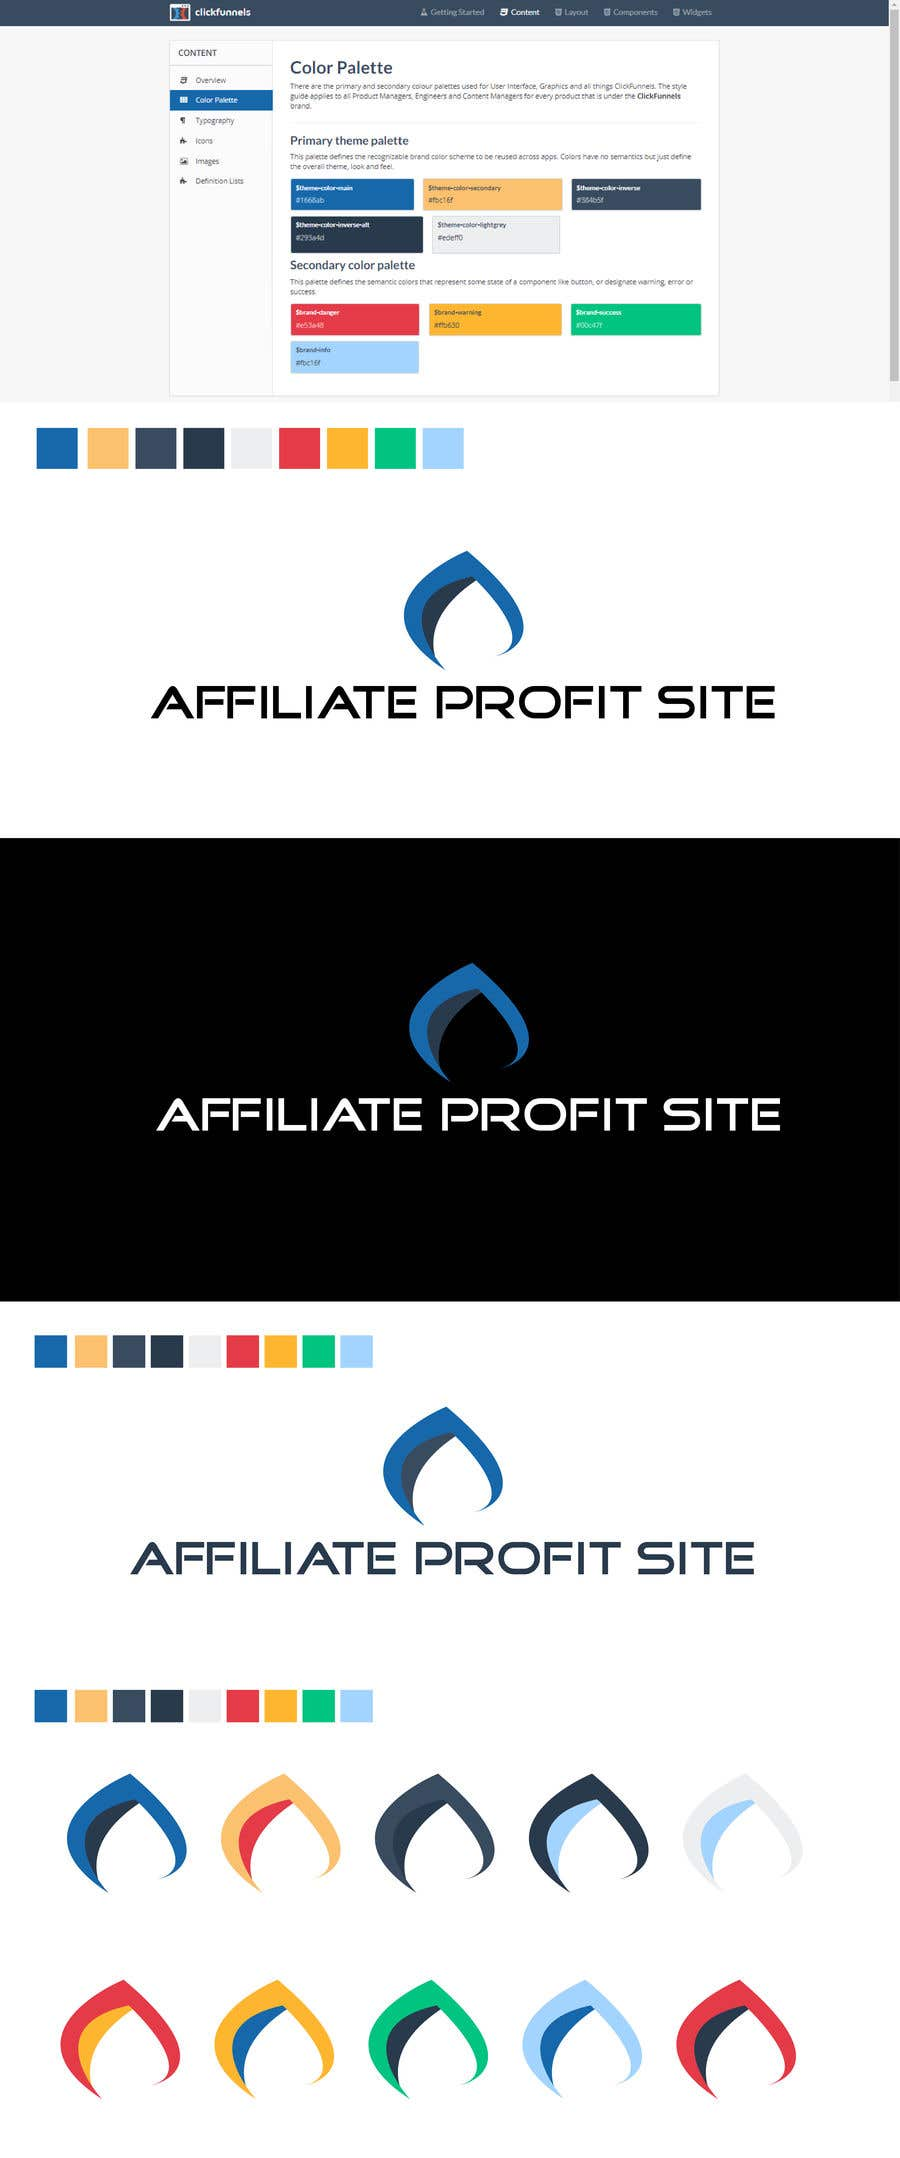 """Intrarea #431 pentru concursul """"I'm putting together a site called: affiliateprofitsite. I would like a logo similar to the examples attached. I want it easy to read, clean, modern and the color scheme should consist of blue, orange, black and white or the Clickfunnels colors lol."""""""